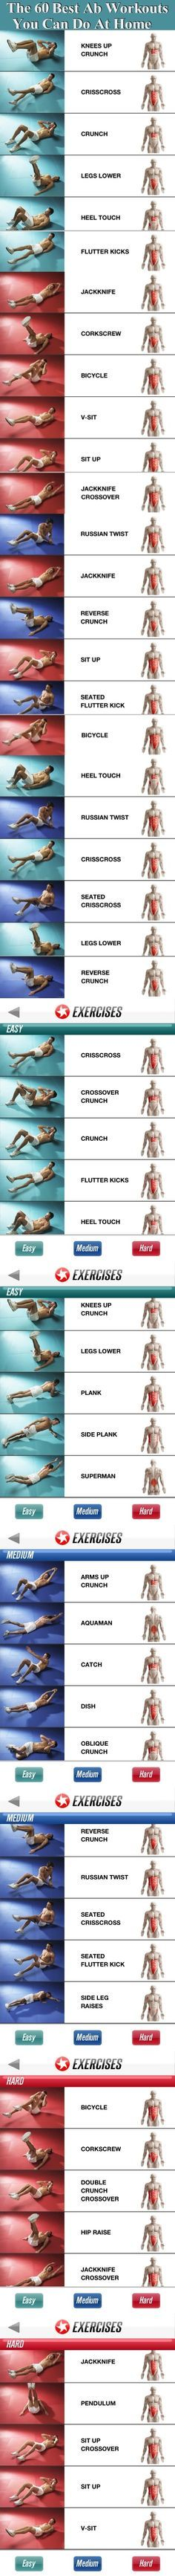 The 60 Best Ab Workouts You Can Do From Home Pictures, Photos, and Images for Facebook, Tumblr, Pinterest, and Twitter                                                                                                                                                     More